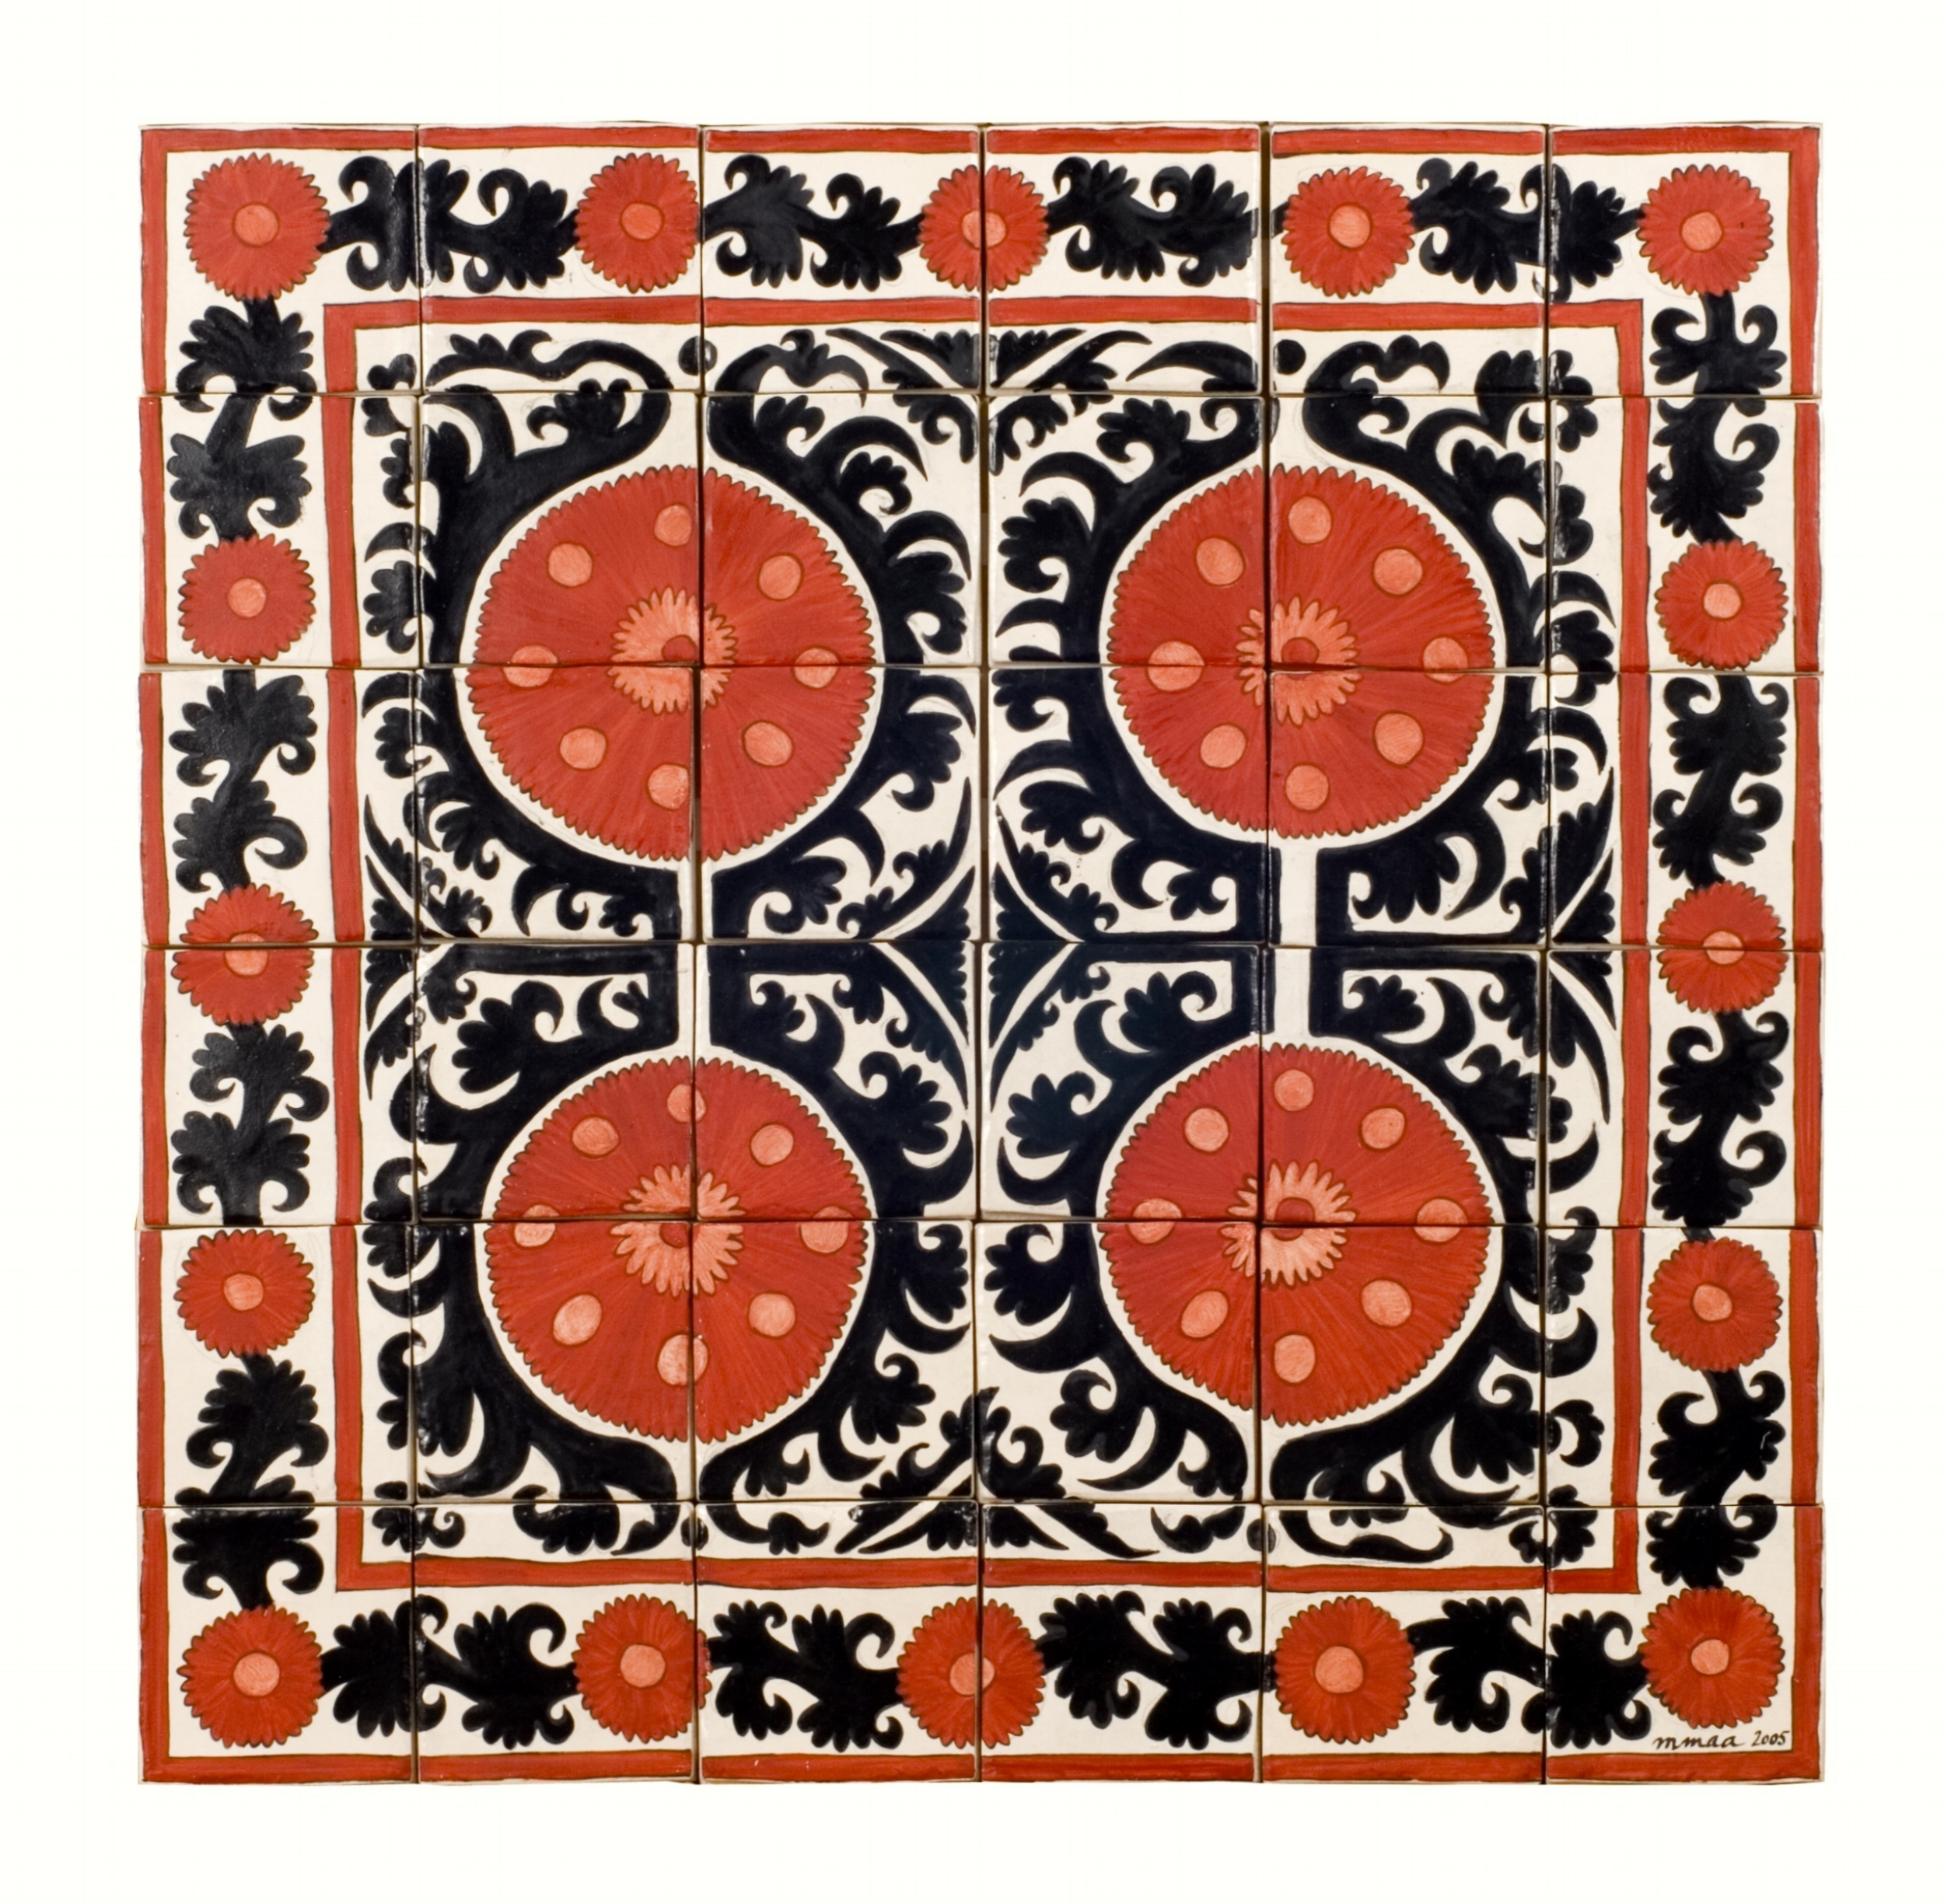 Central Asian Textile Detail  - 23.5 x 23.5 in, 60 x 60 cm